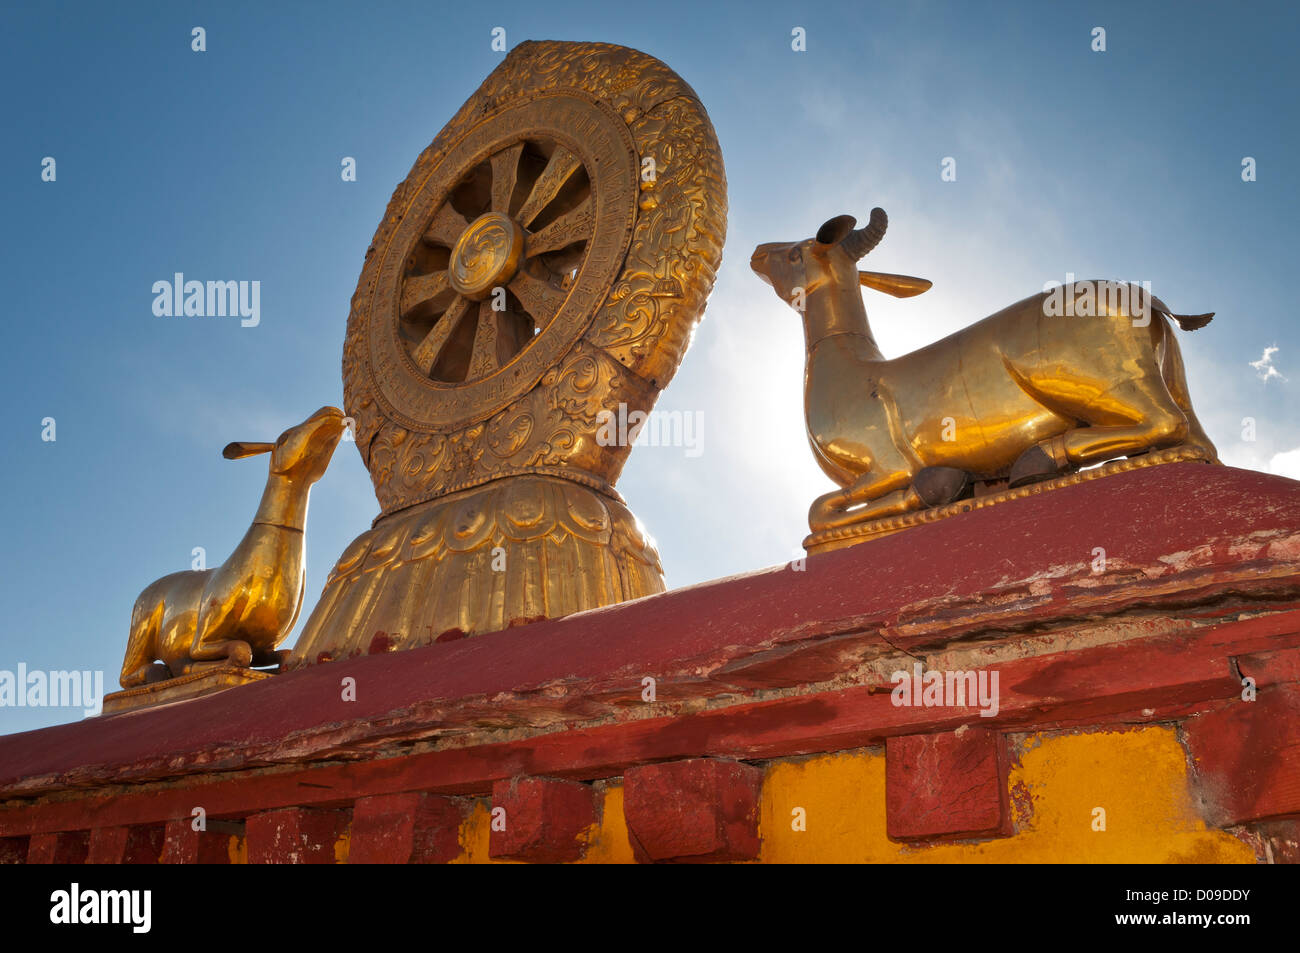 Larger than life size goldn lambs on roof of Tibet's most sacred Buddhist temple the Jokhang, Lhasa, Tibet, - Stock Image